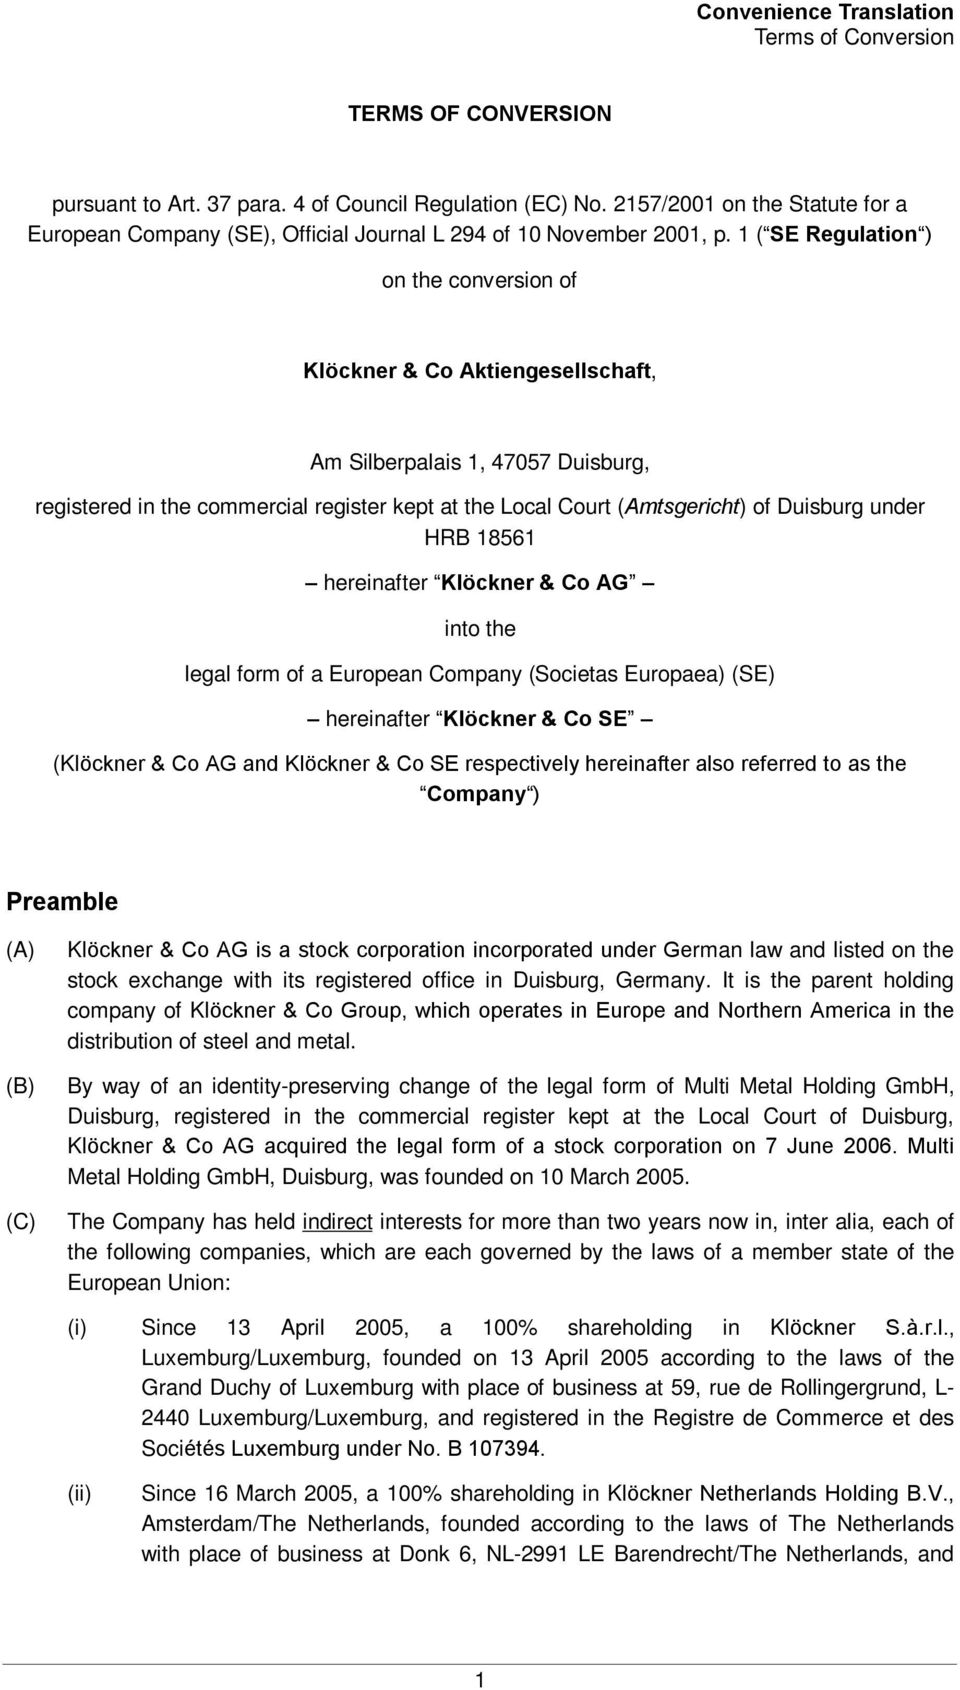 under HRB 18561 hereinafter Klöckner & Co AG into the legal form of a European Company (Societas Europaea) (SE) hereinafter Klöckner & Co SE (Klöckner & Co AG and Klöckner & Co SE respectively